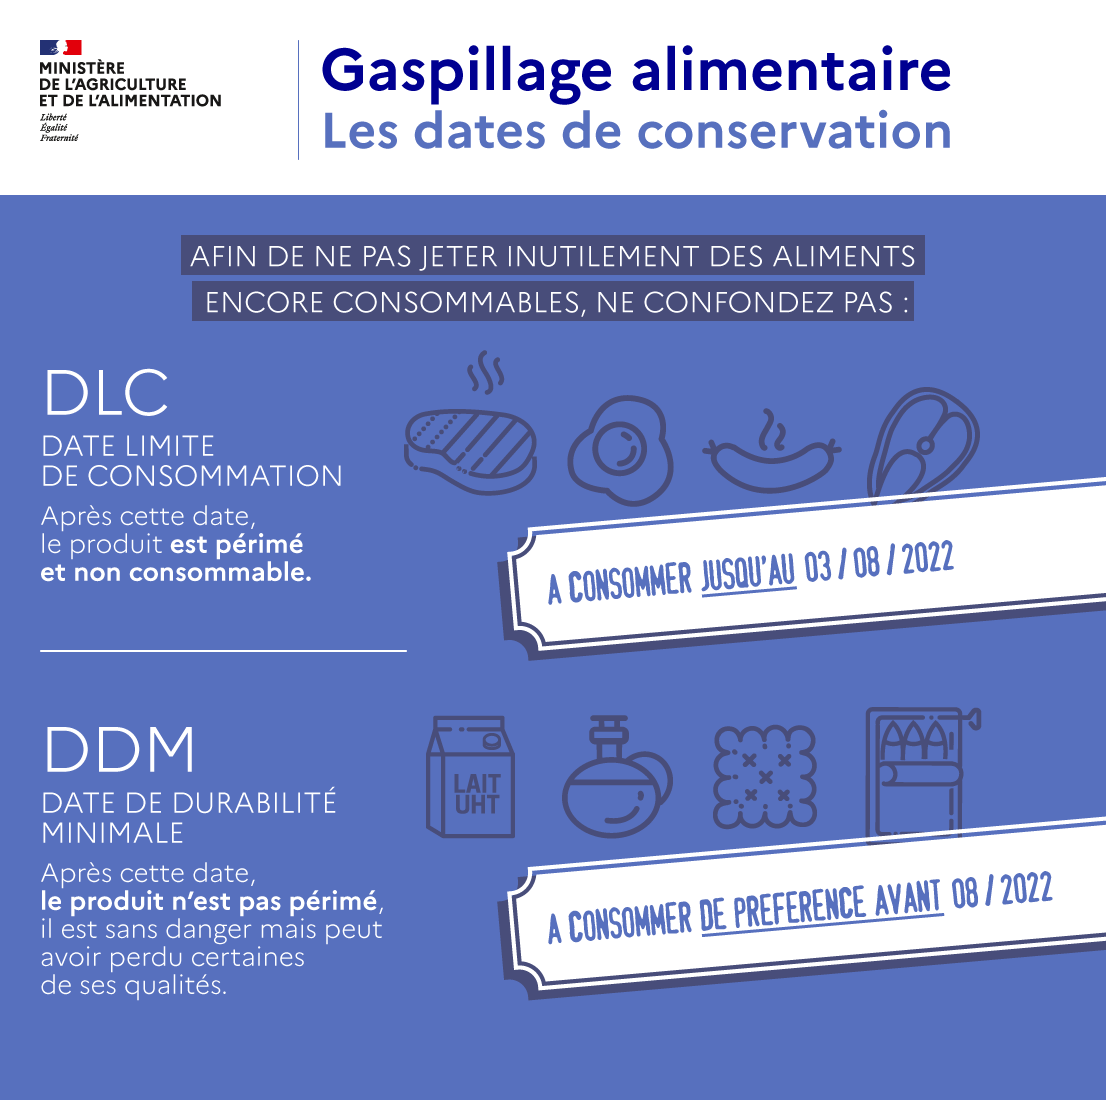 gaspillage alimentaire : date de conservation